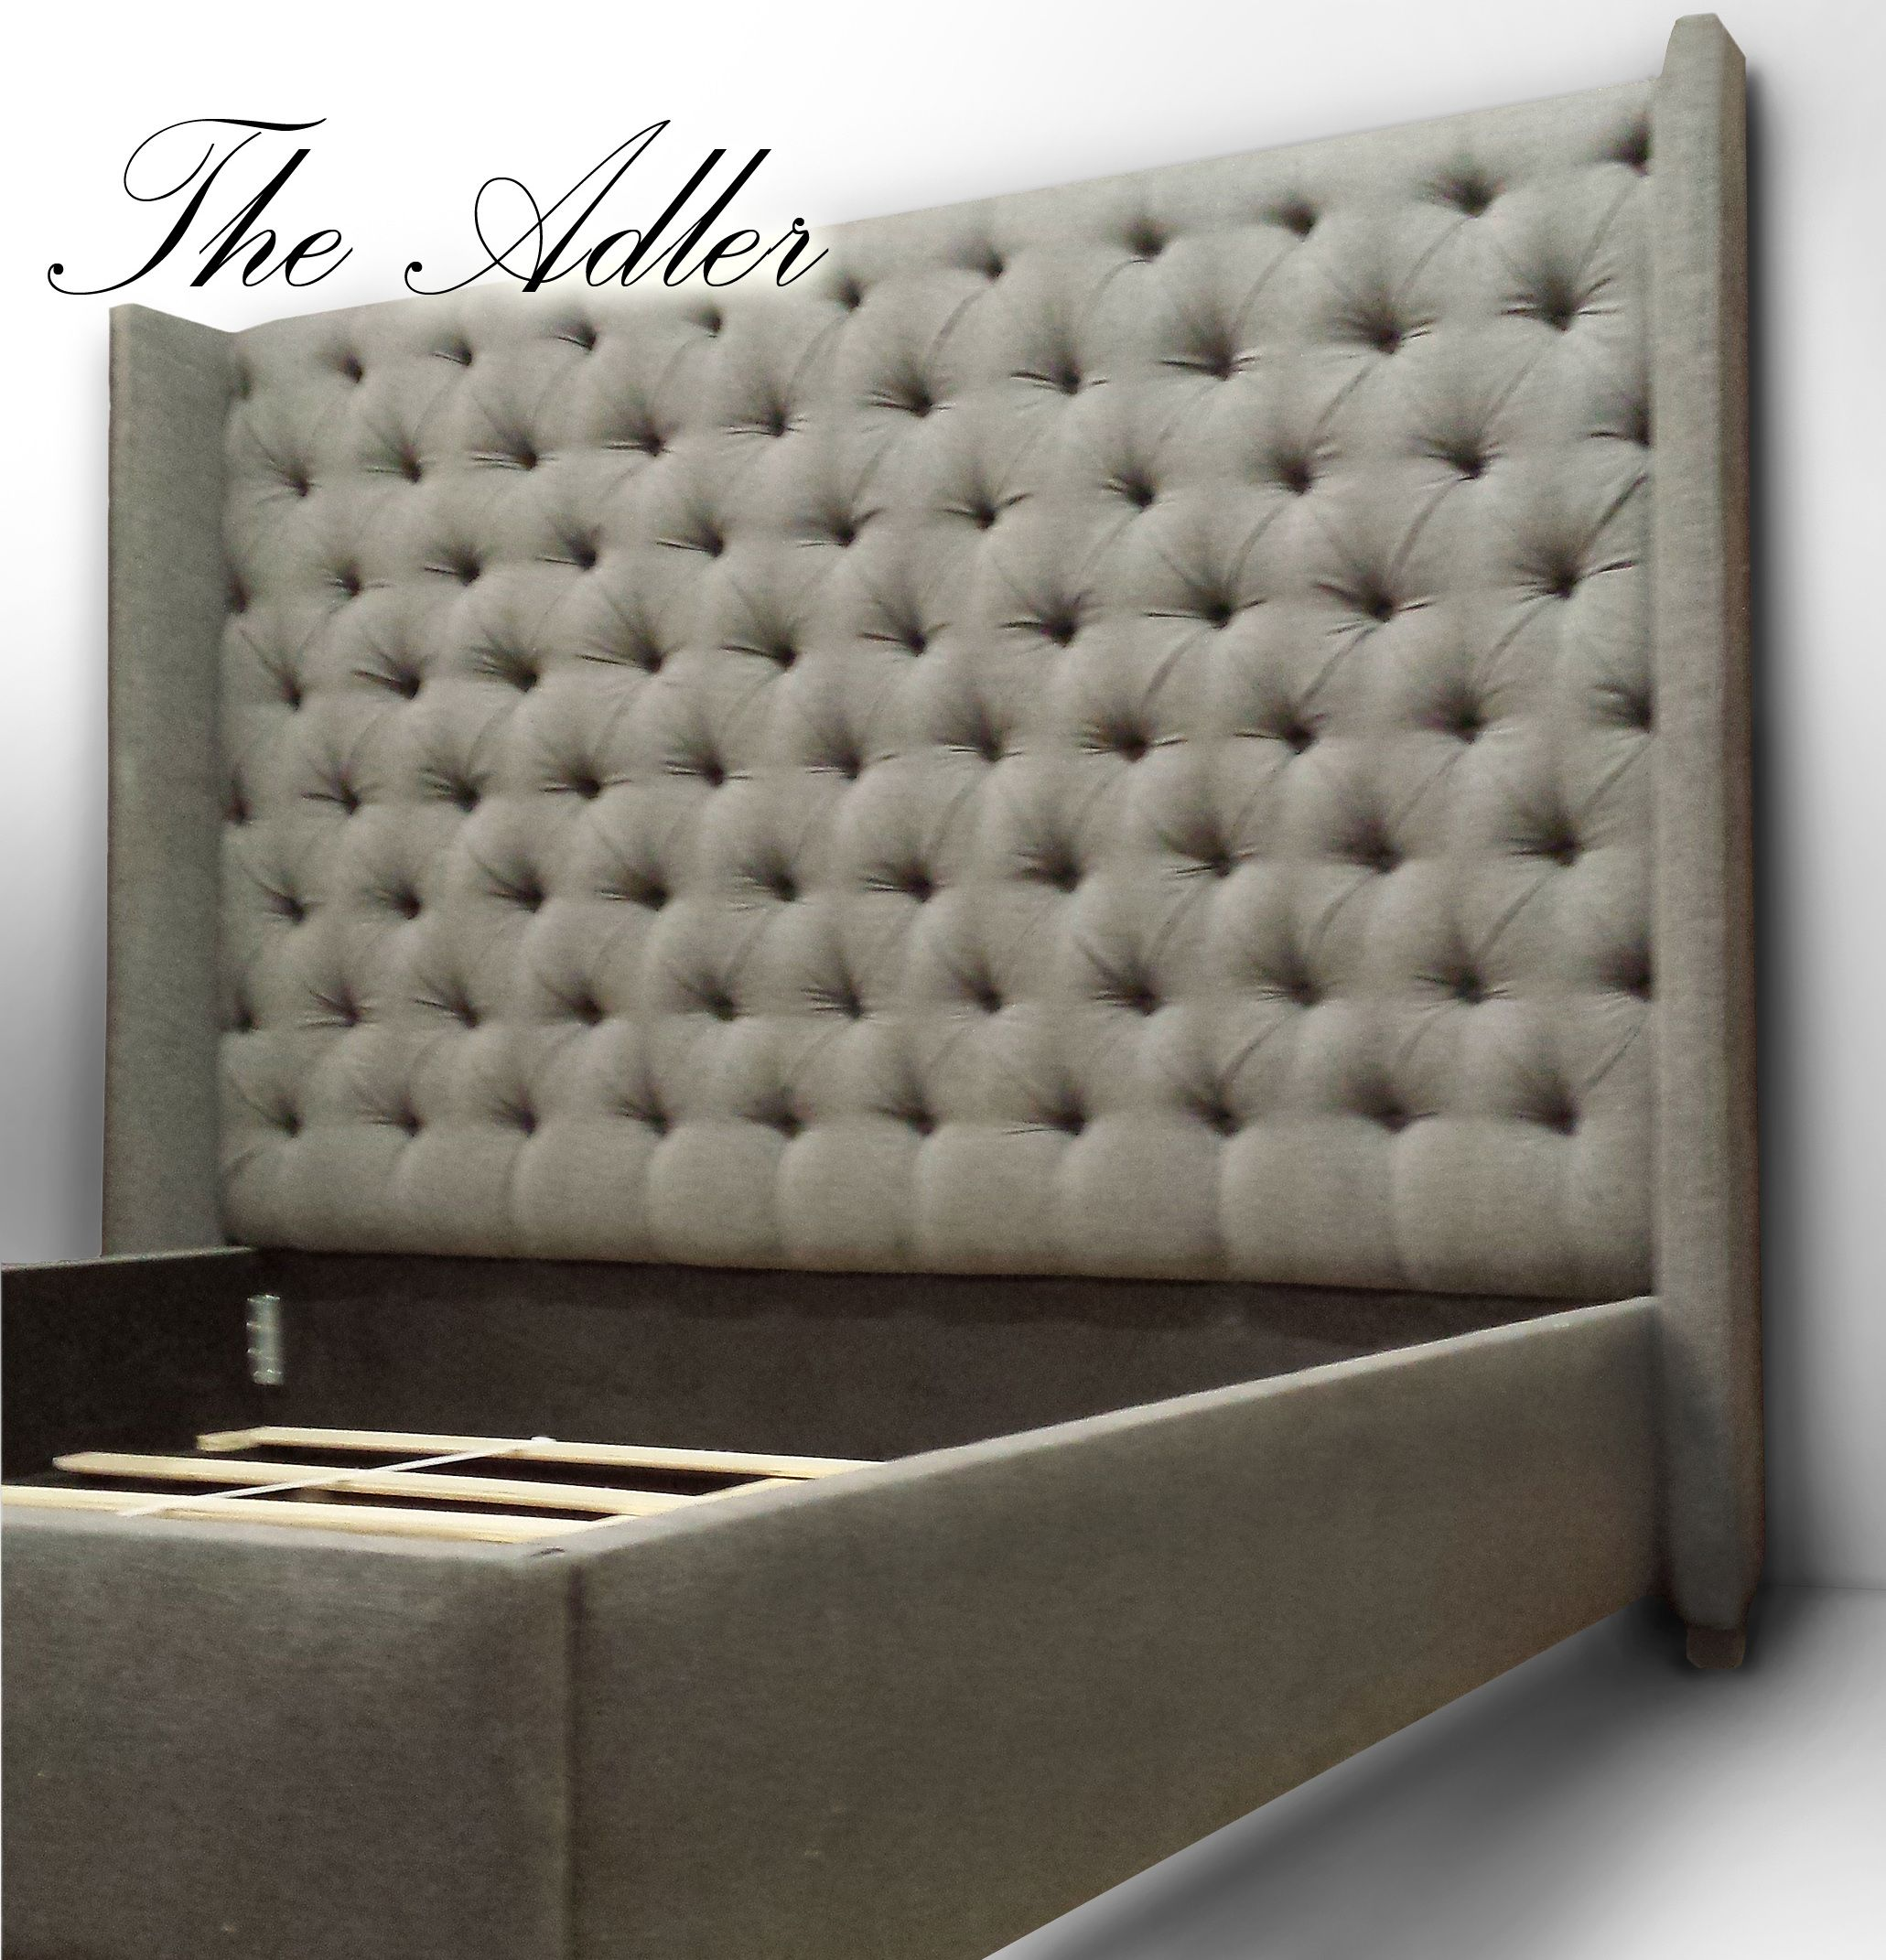 Great prices on custom made tall tufted beds and headboards. Any size,  shape and